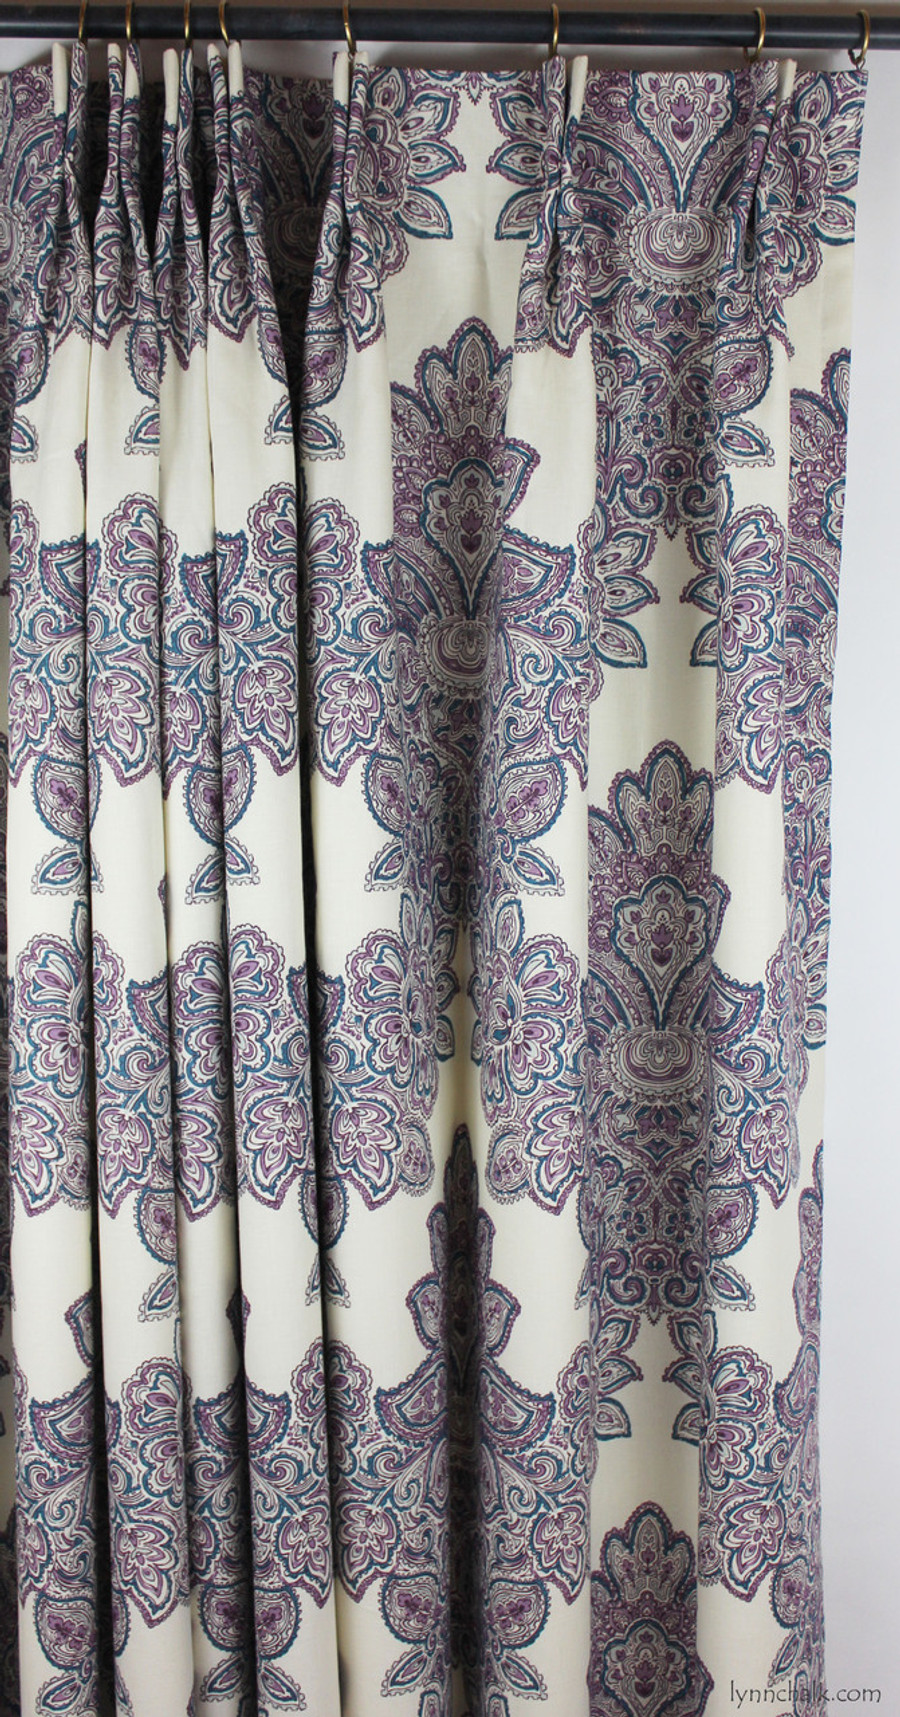 Duralee Maris Custom Dining Room Drapes (shown in Currant-also comes in Rose and Sea Green)